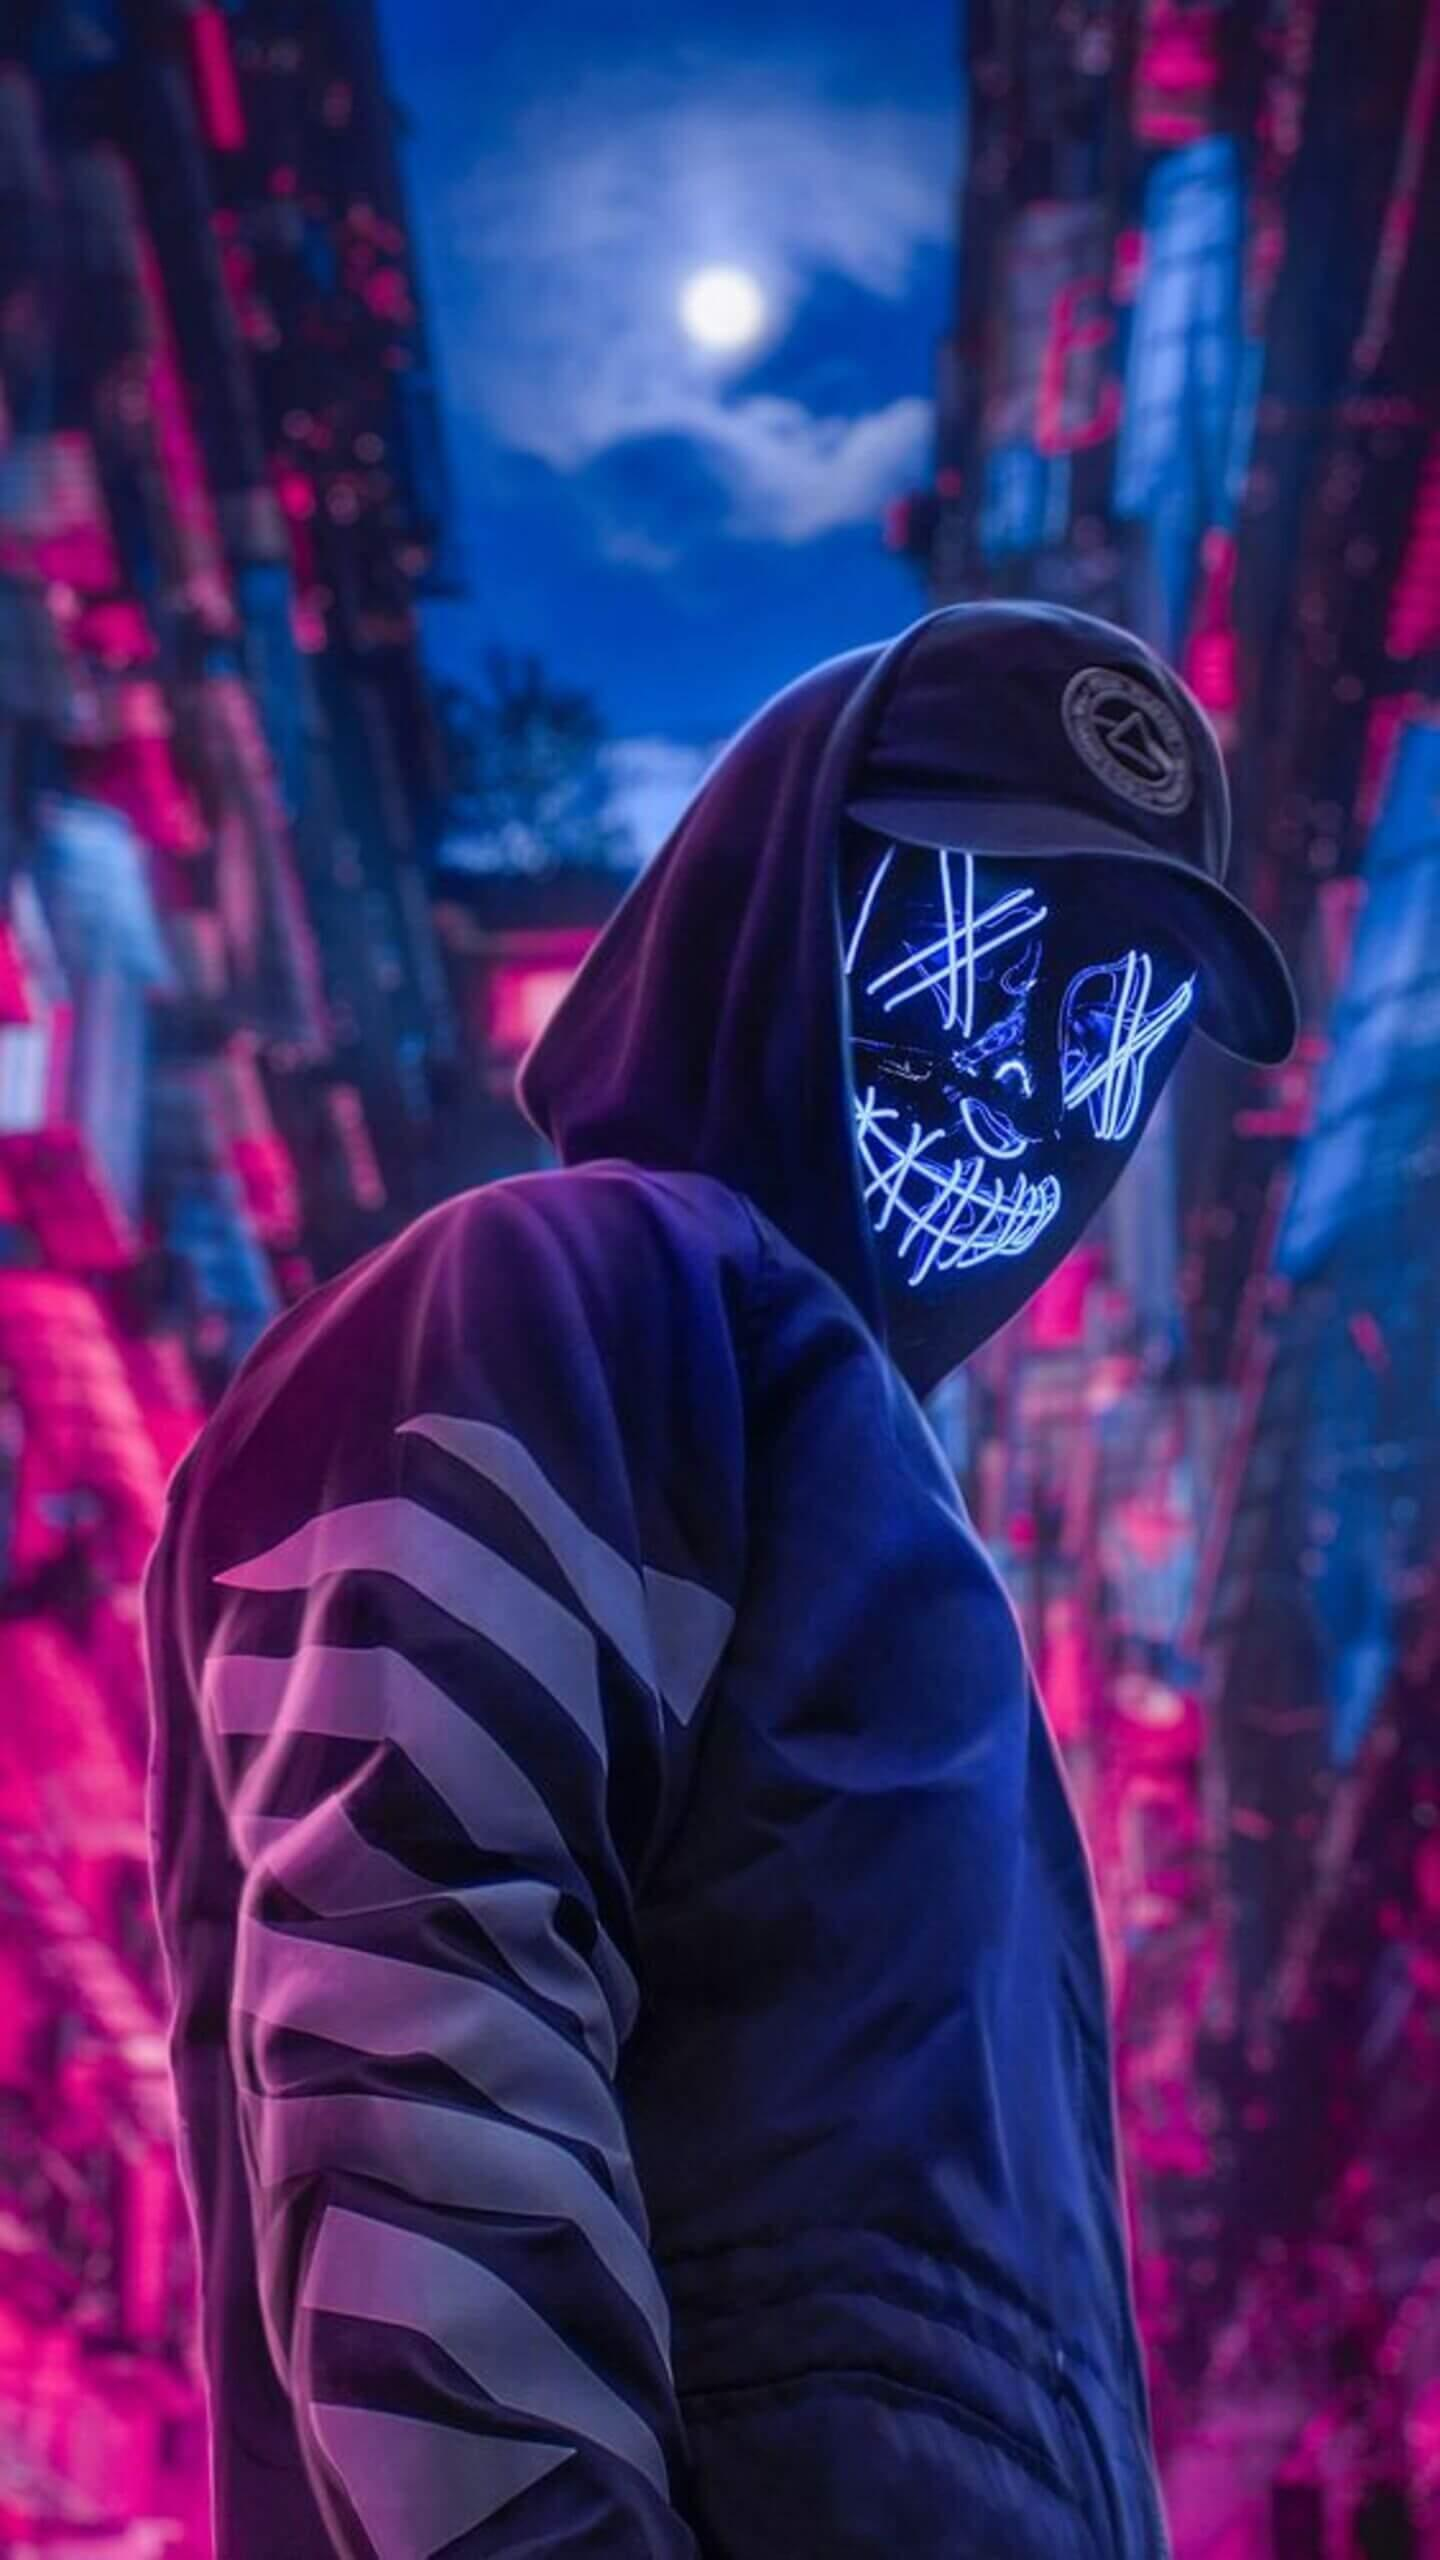 Led Purge Mask Wallpaper HD for Android - APK Download